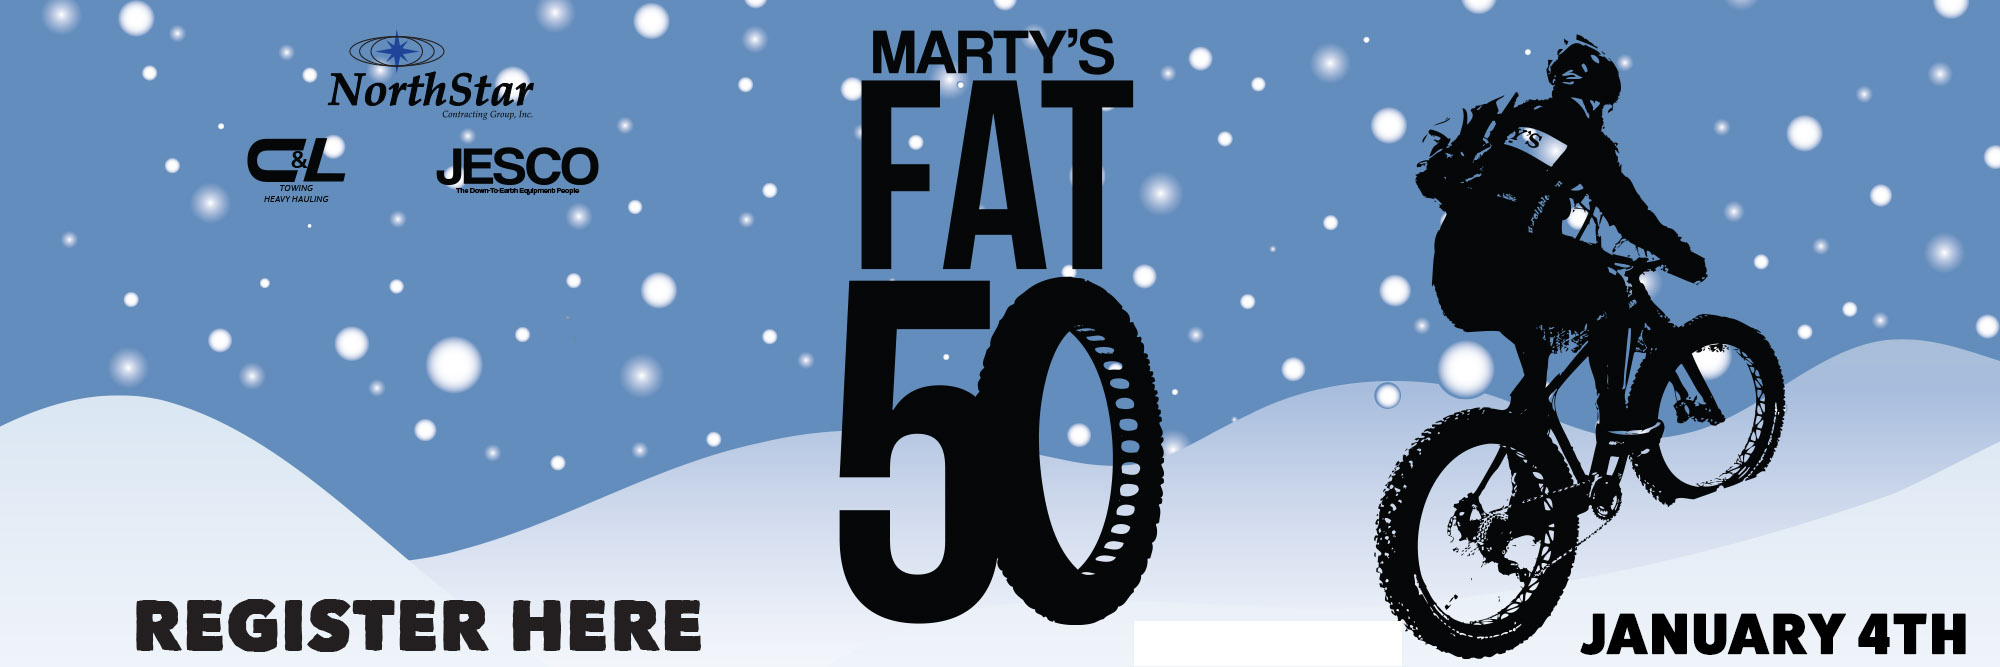 Marty's Fat 50